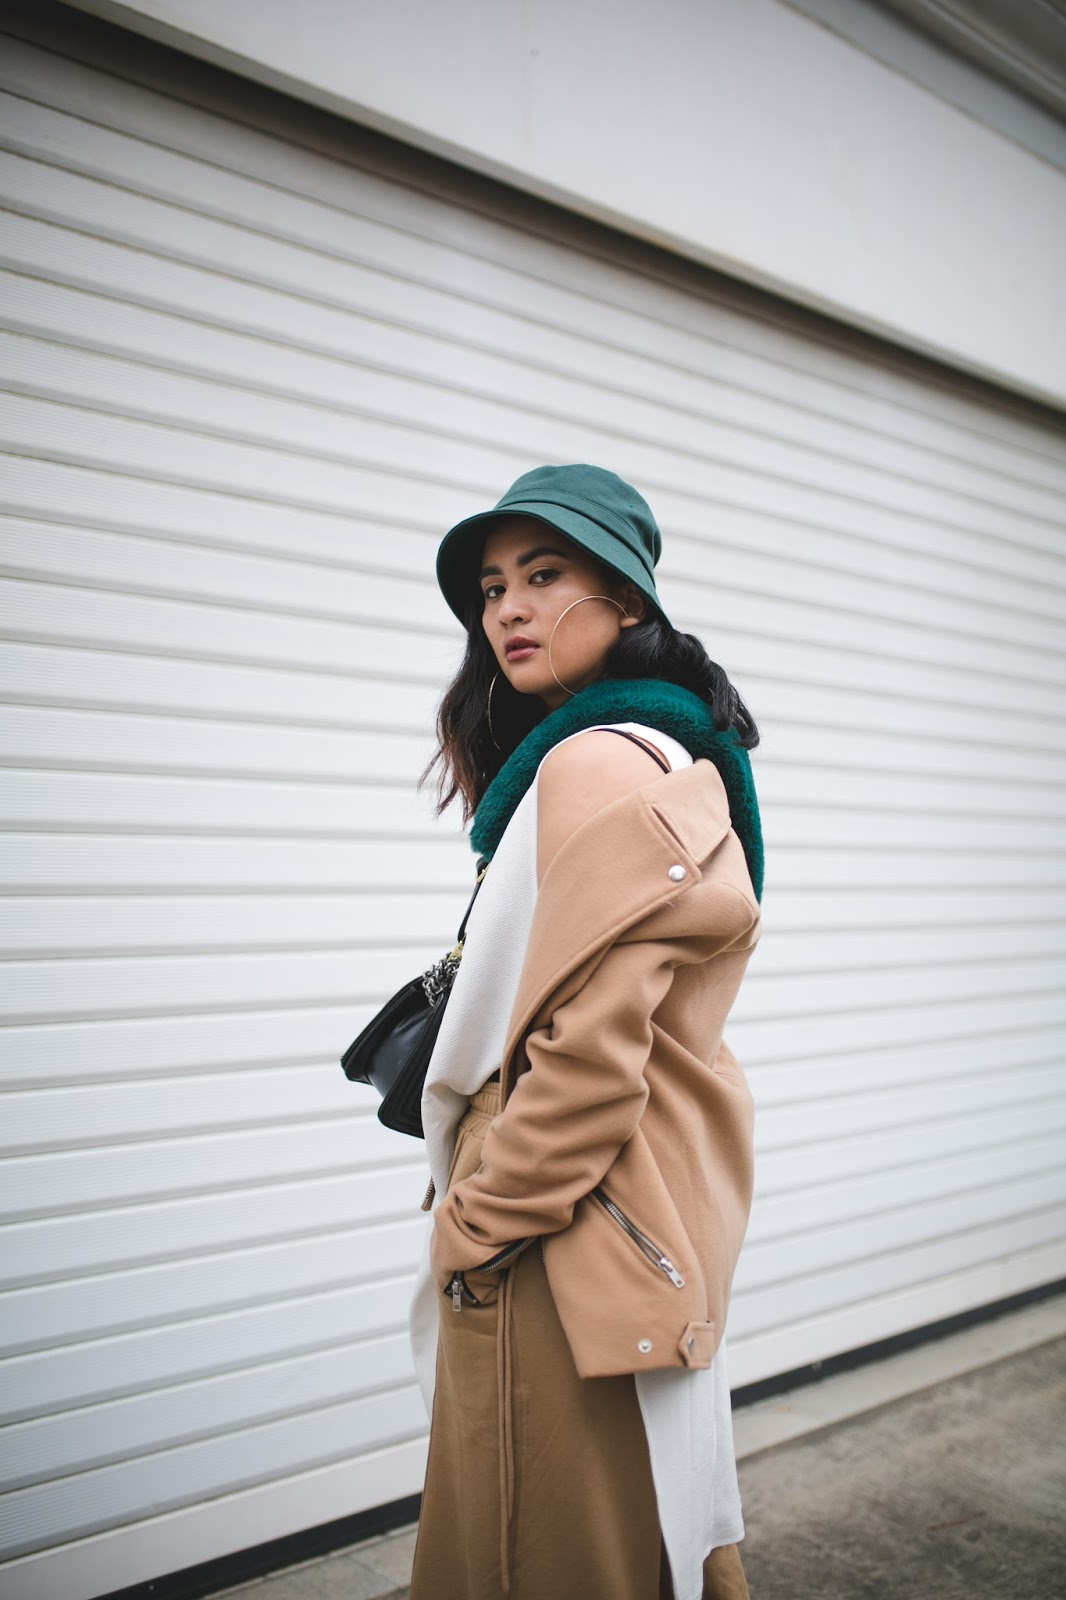 Macau Fashion Blogger wearing Layers of Neutrals